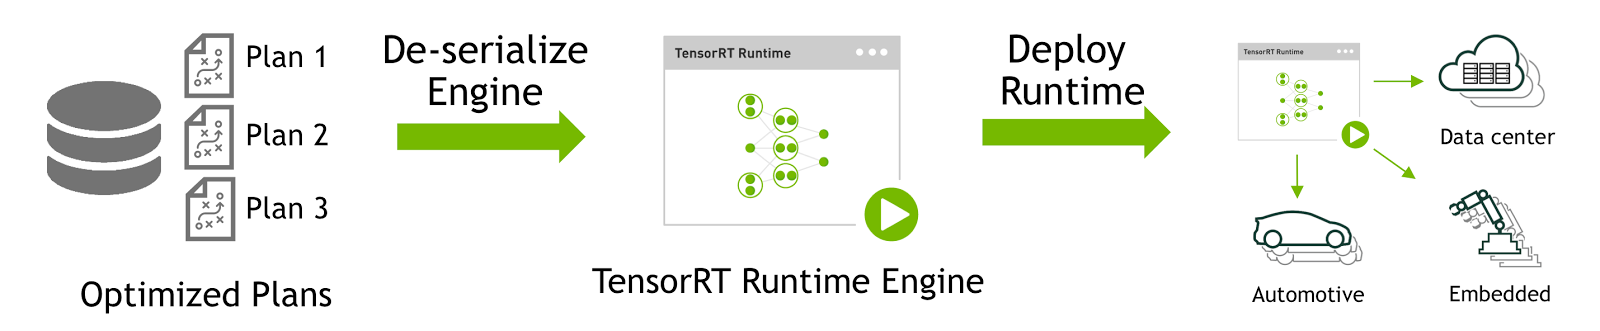 TensorRT: Deploy generated runtime inference engine for inference